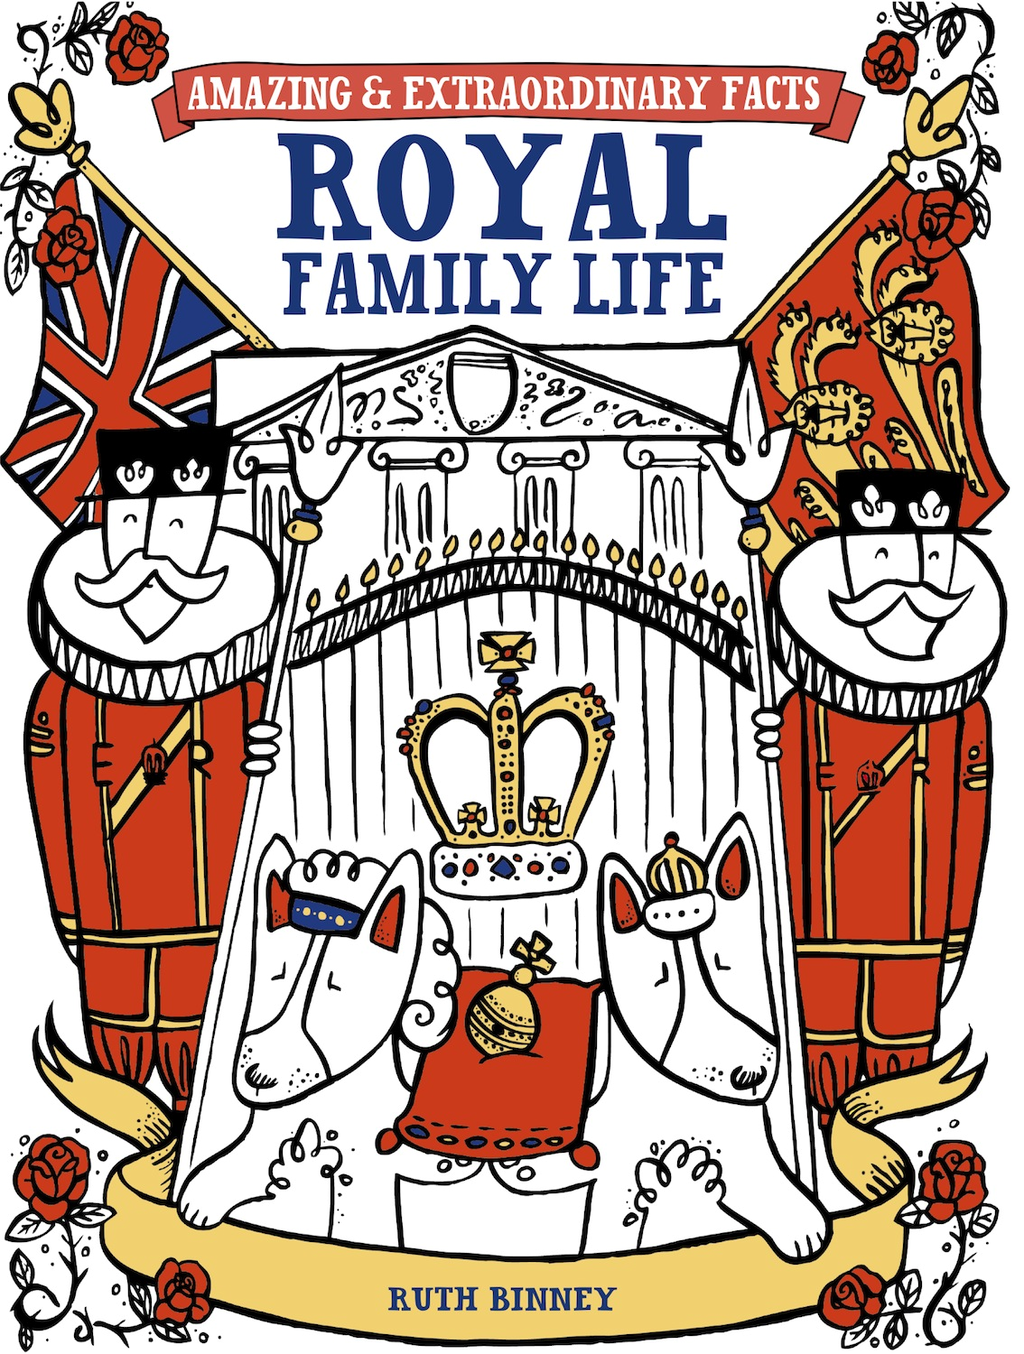 Amazing & Extraordinary Facts Royal Family Life By: Ruth Binney